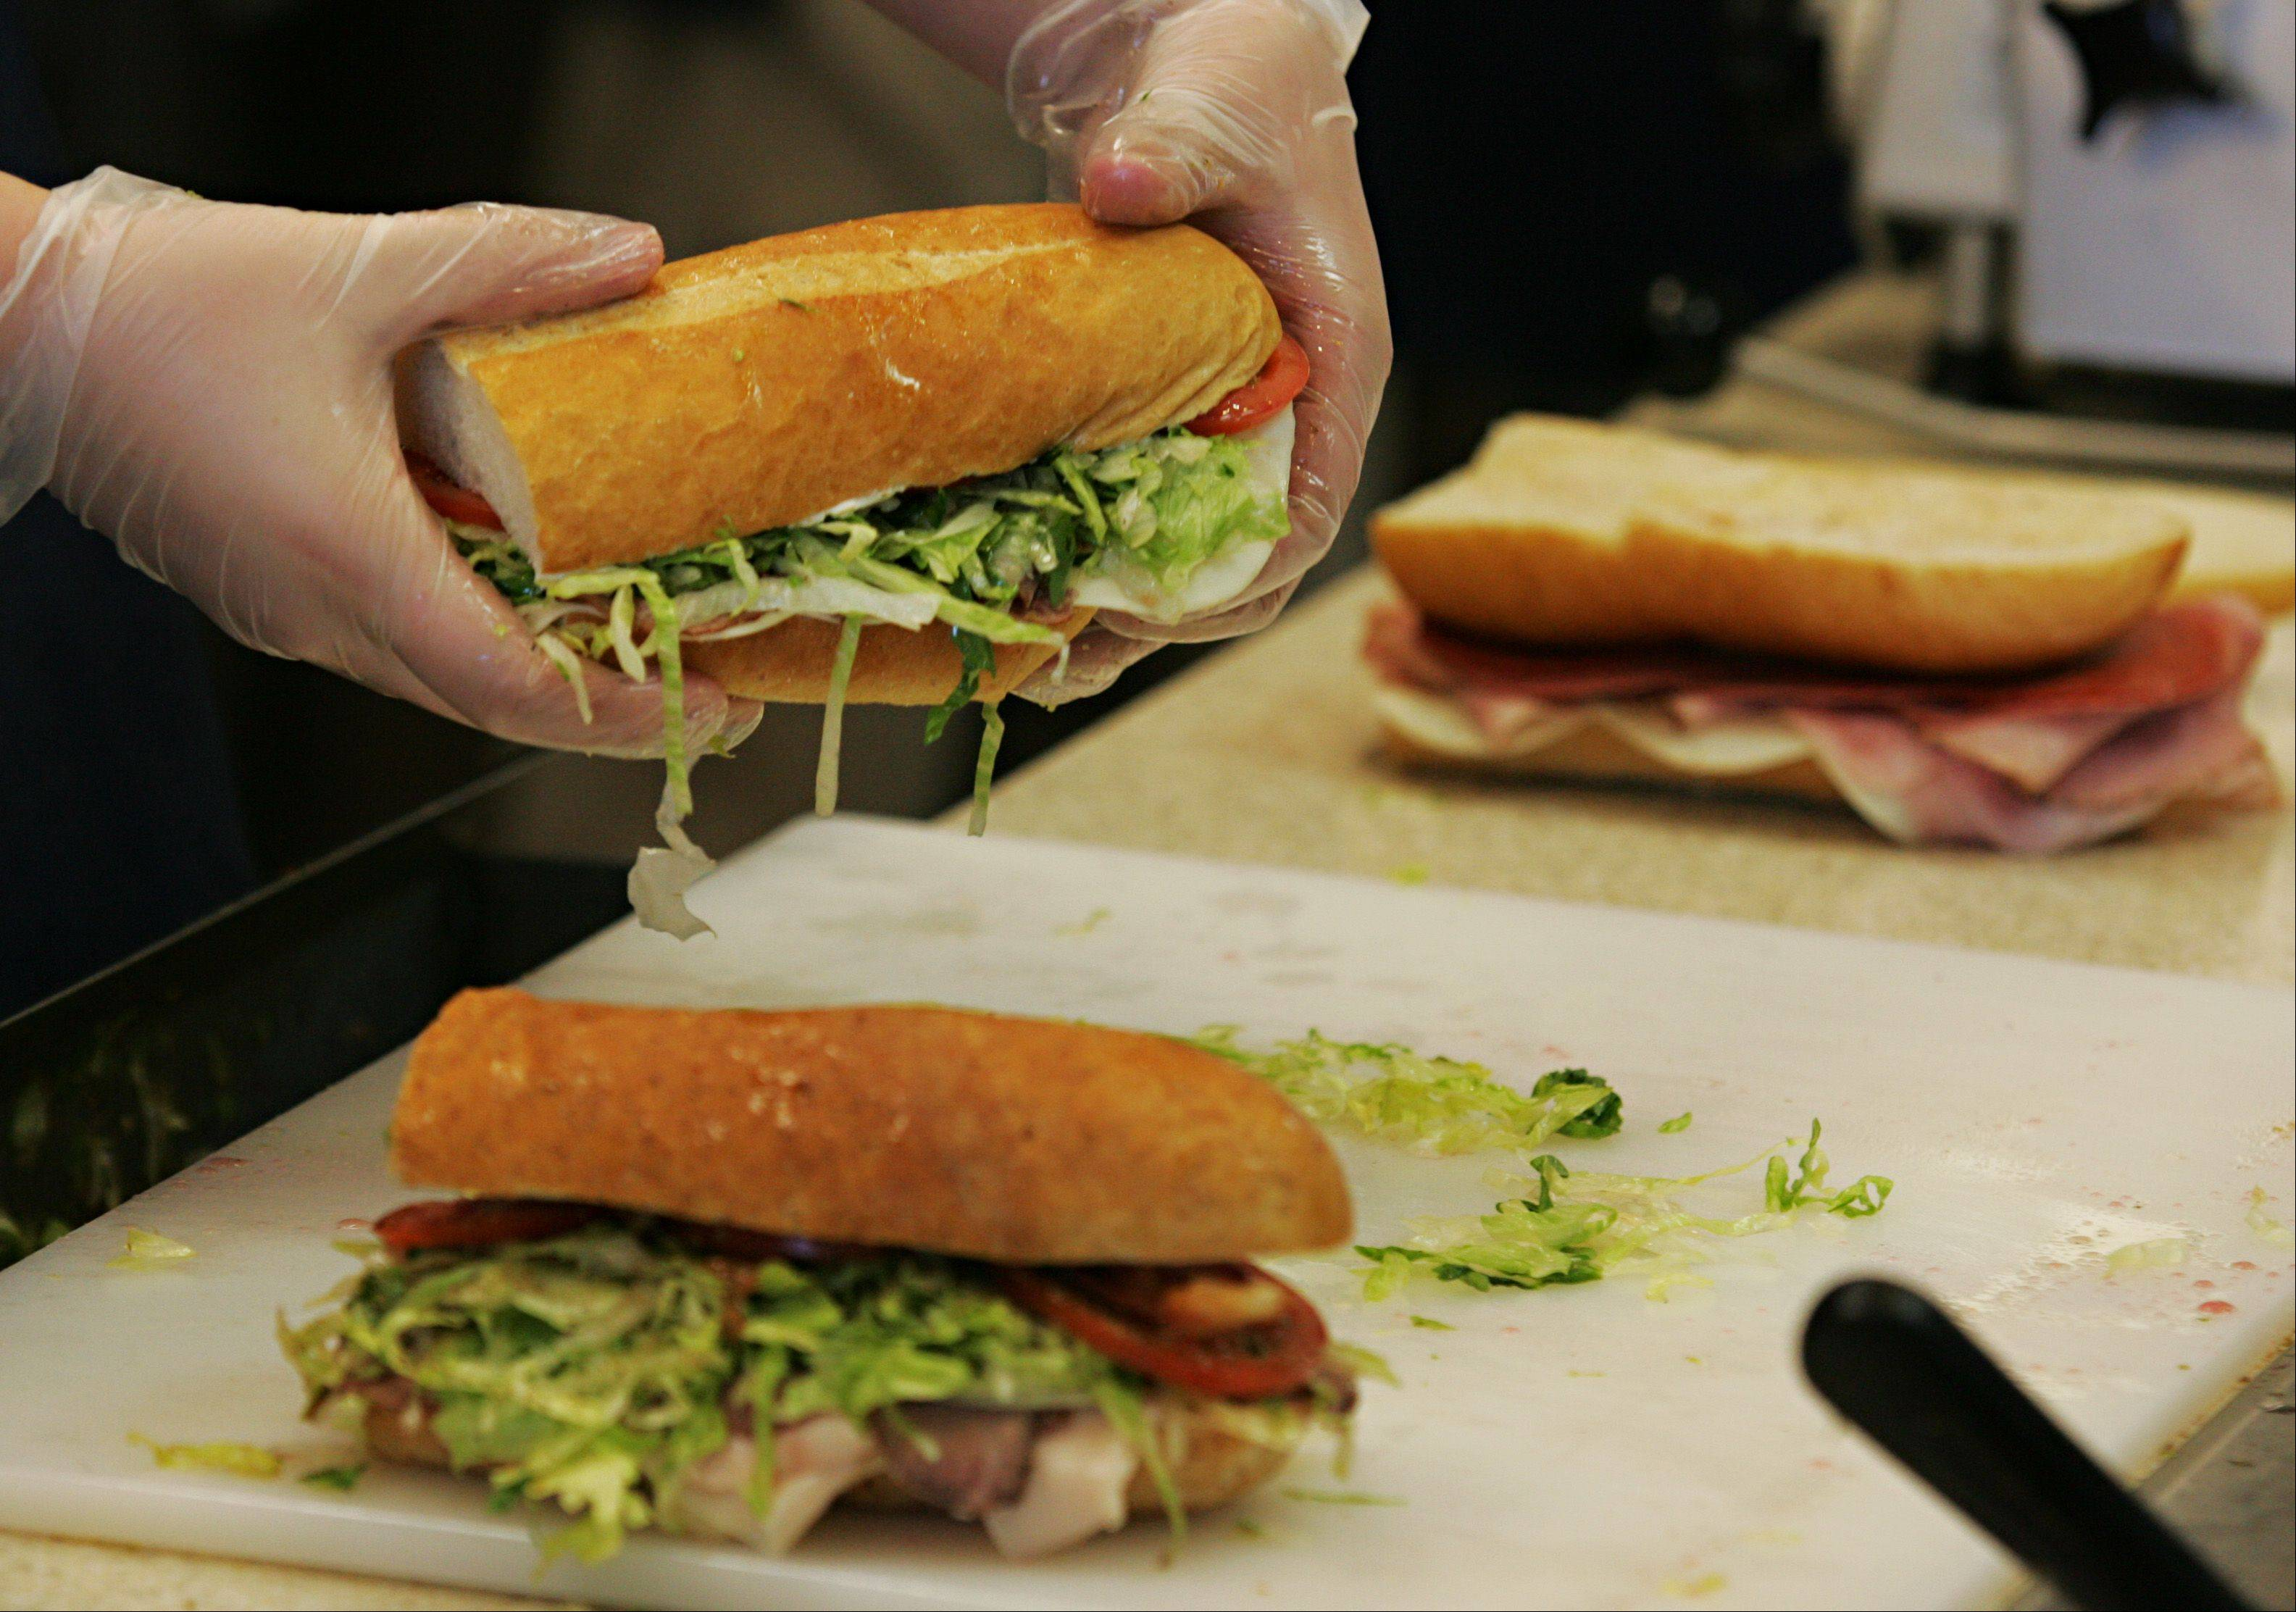 Jersey Mike's Subs employee Matt Stickrod puts a sandwich together on the first day of business for the new location in South Elgin.